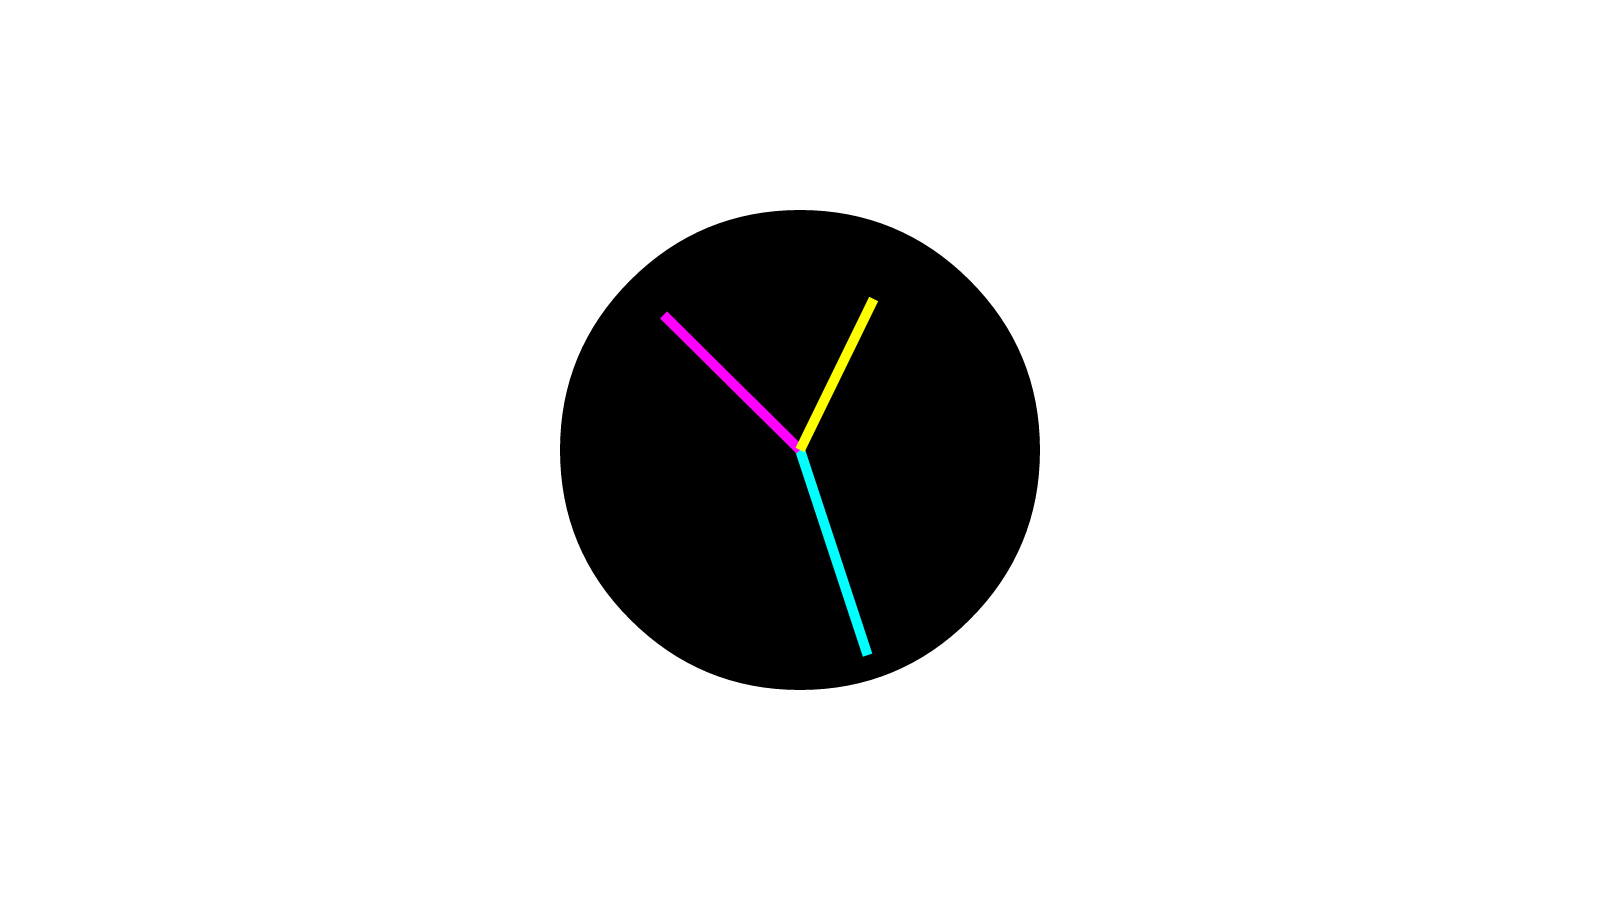 Analogue Clock Toy Site